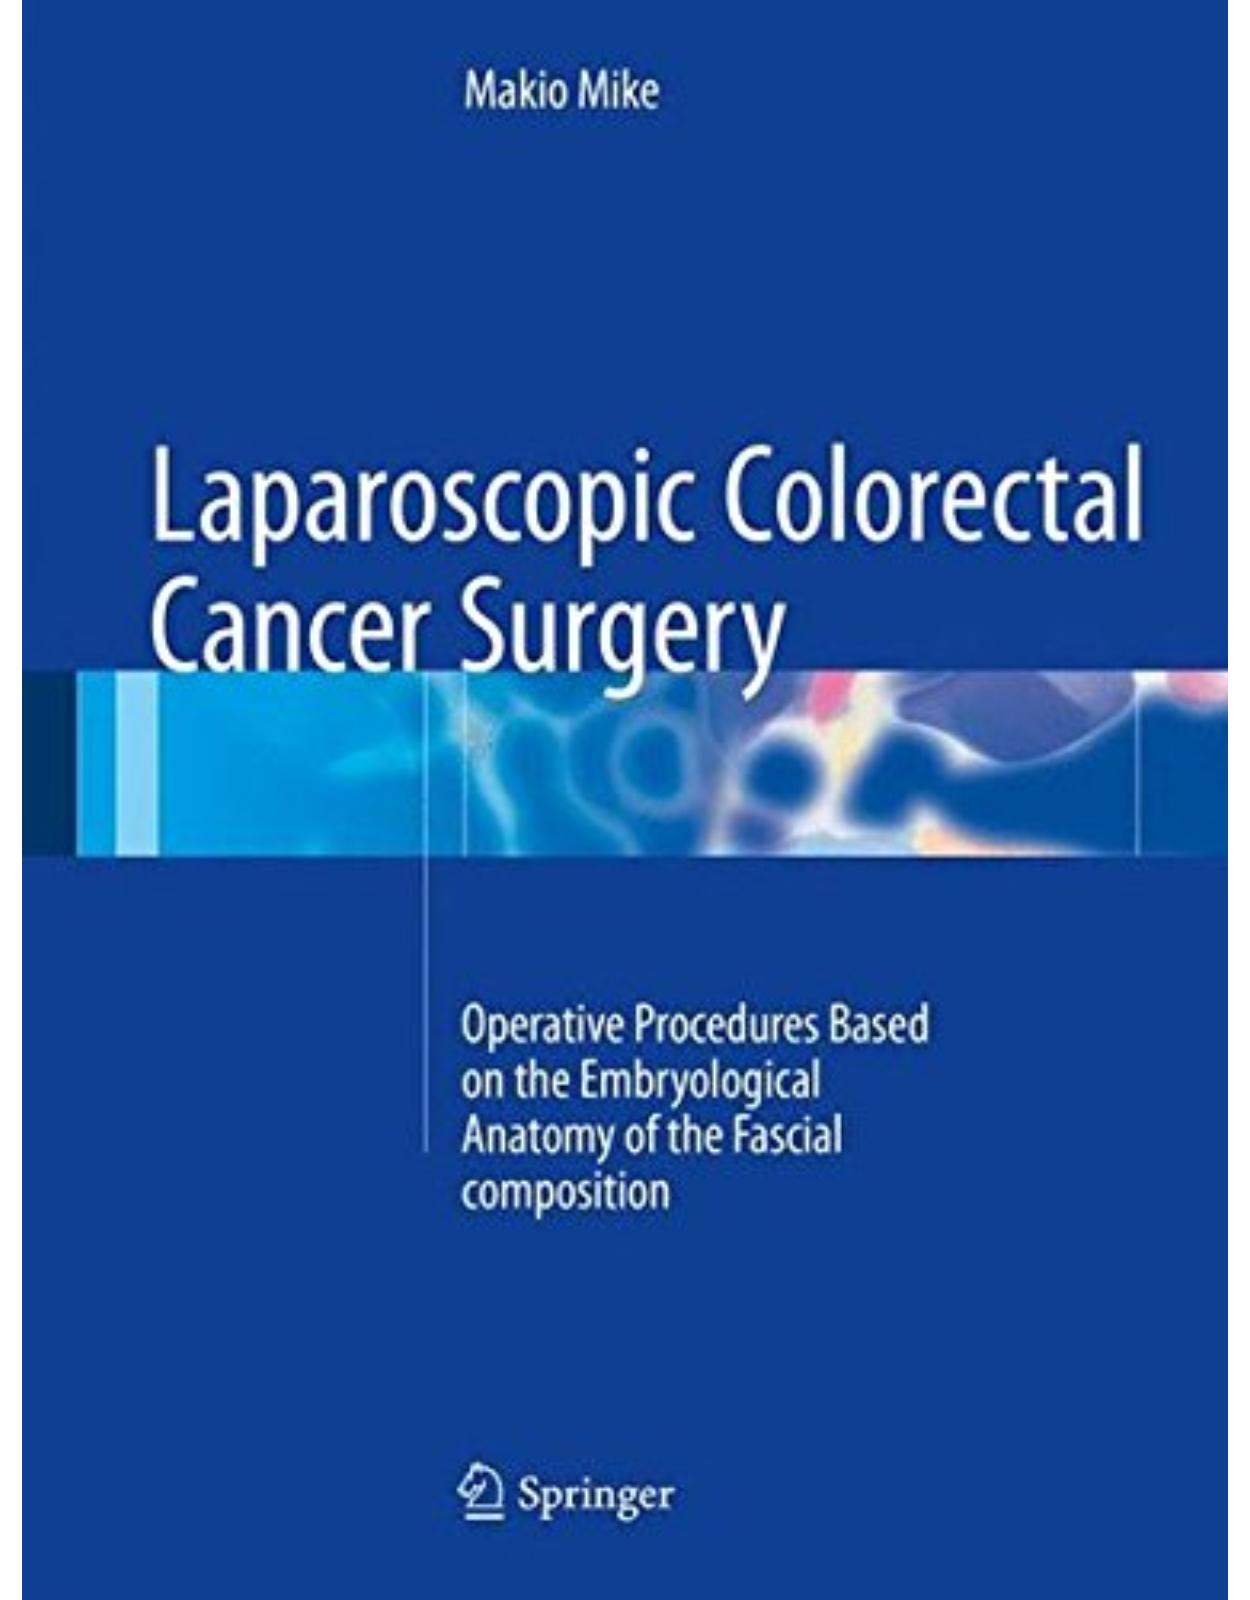 Laparoscopic Colorectal Cancer Surgery